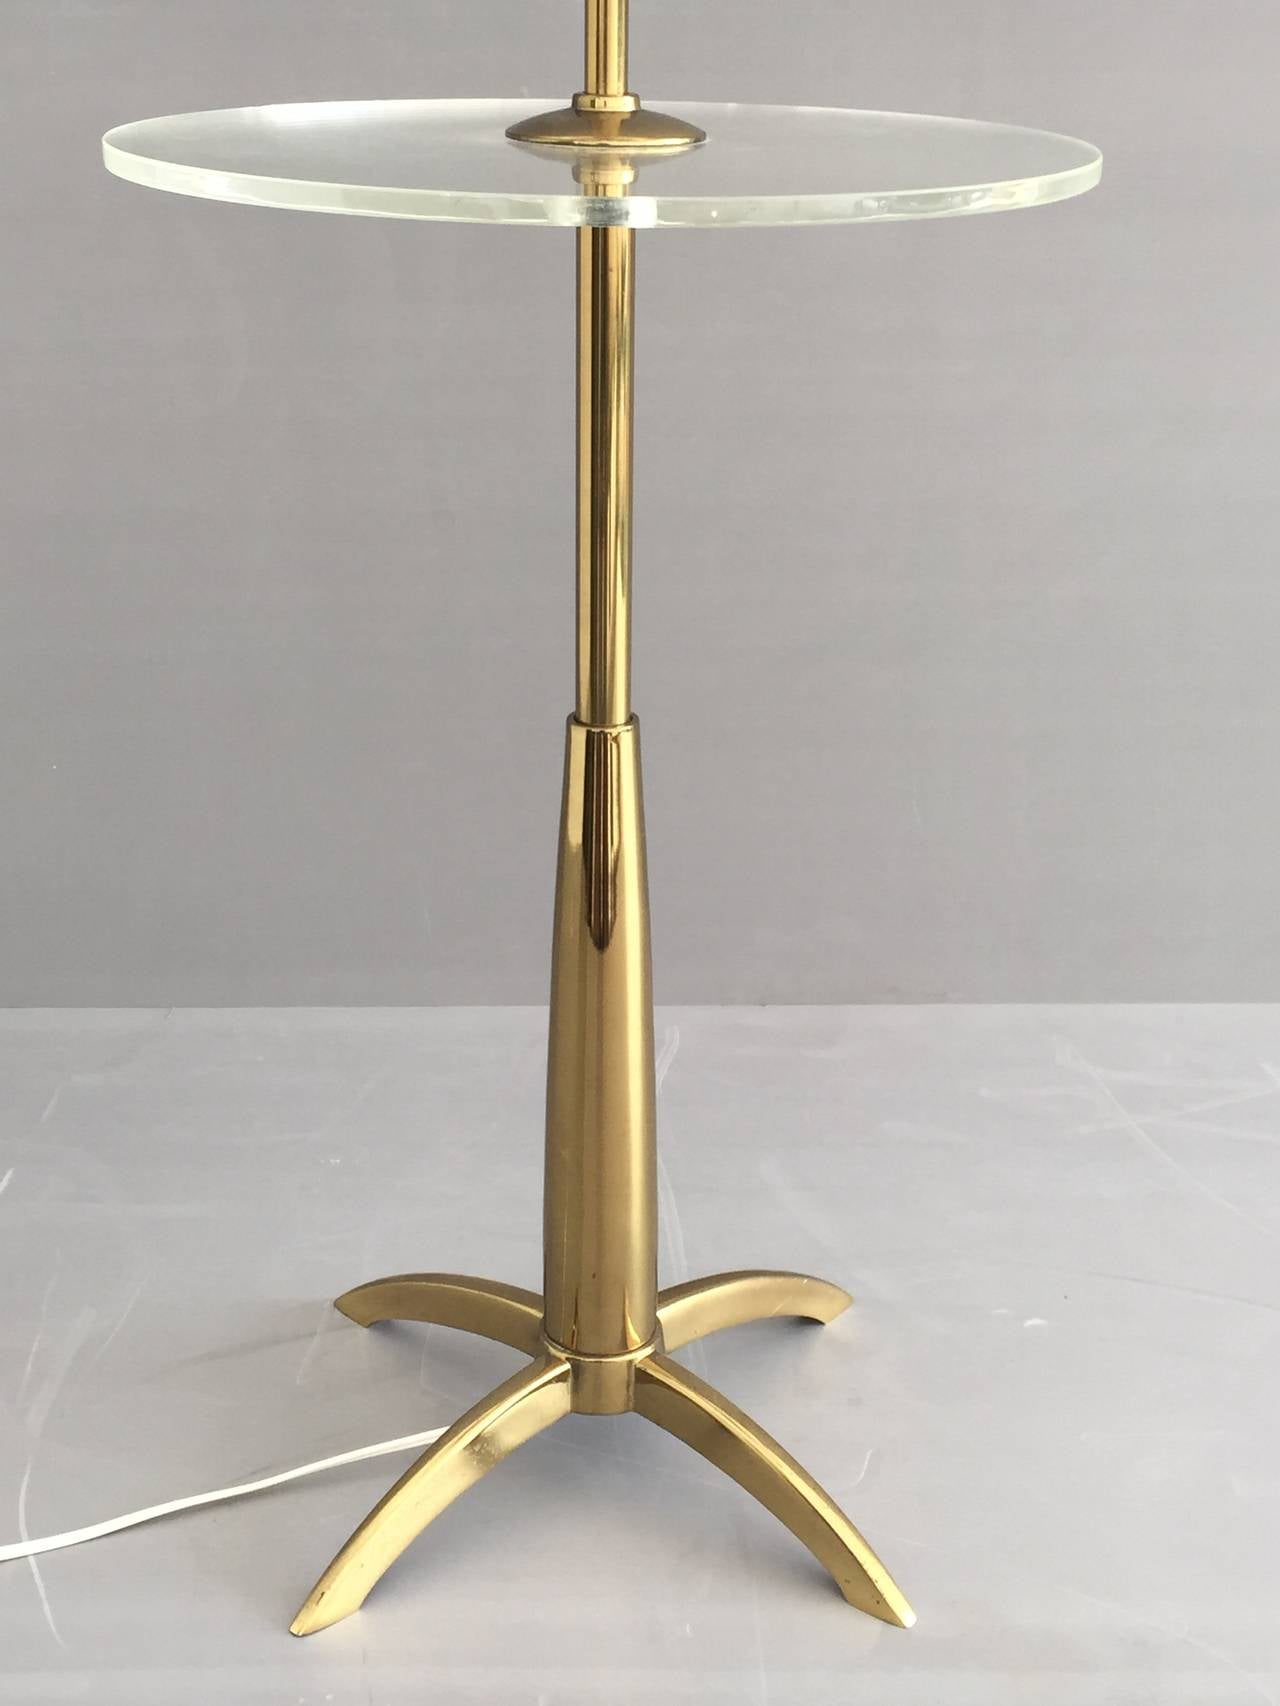 brass and acrylic floor lamp end table for sale at 1stdibs. Black Bedroom Furniture Sets. Home Design Ideas